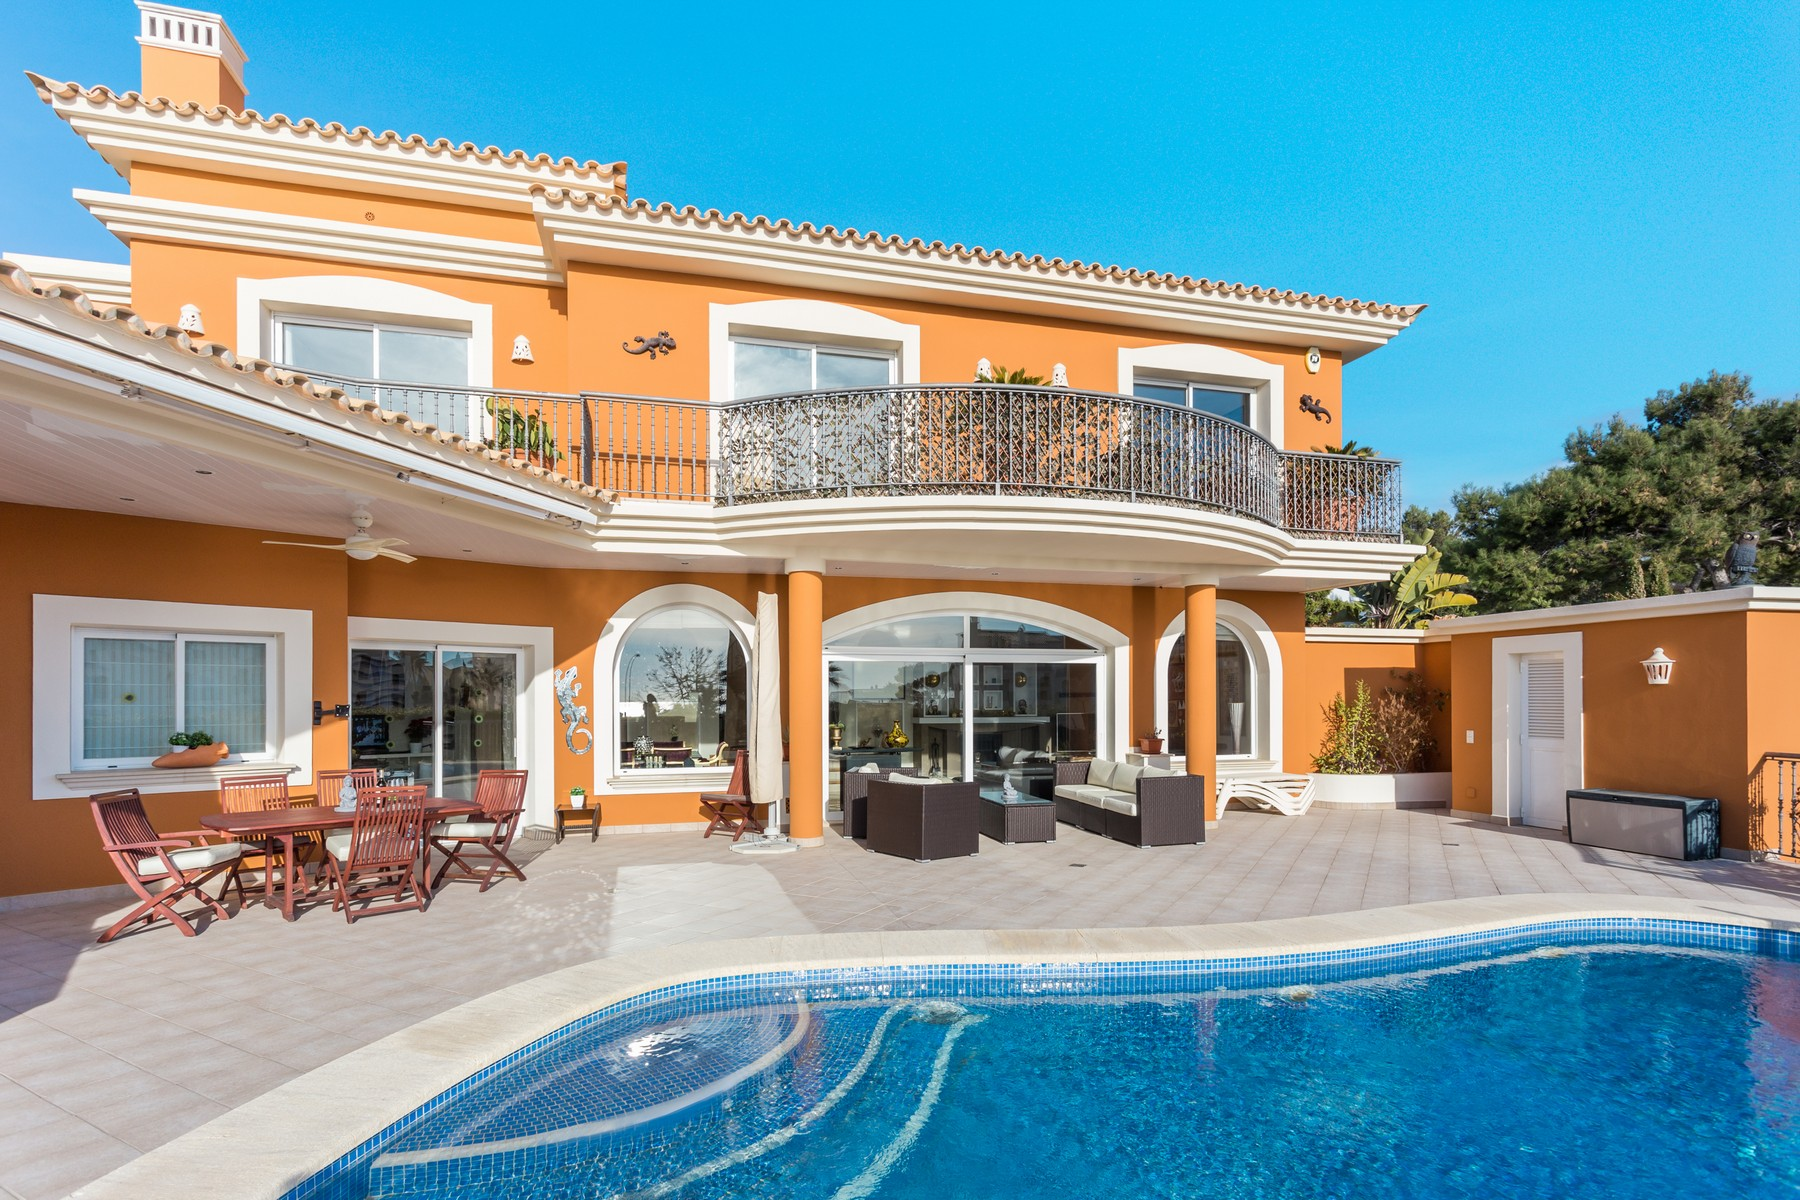 Single Family Home for Sale at Mediterranean villa with views in Nova Santa Ponsa Santa Ponsa, Mallorca, 07180 Spain